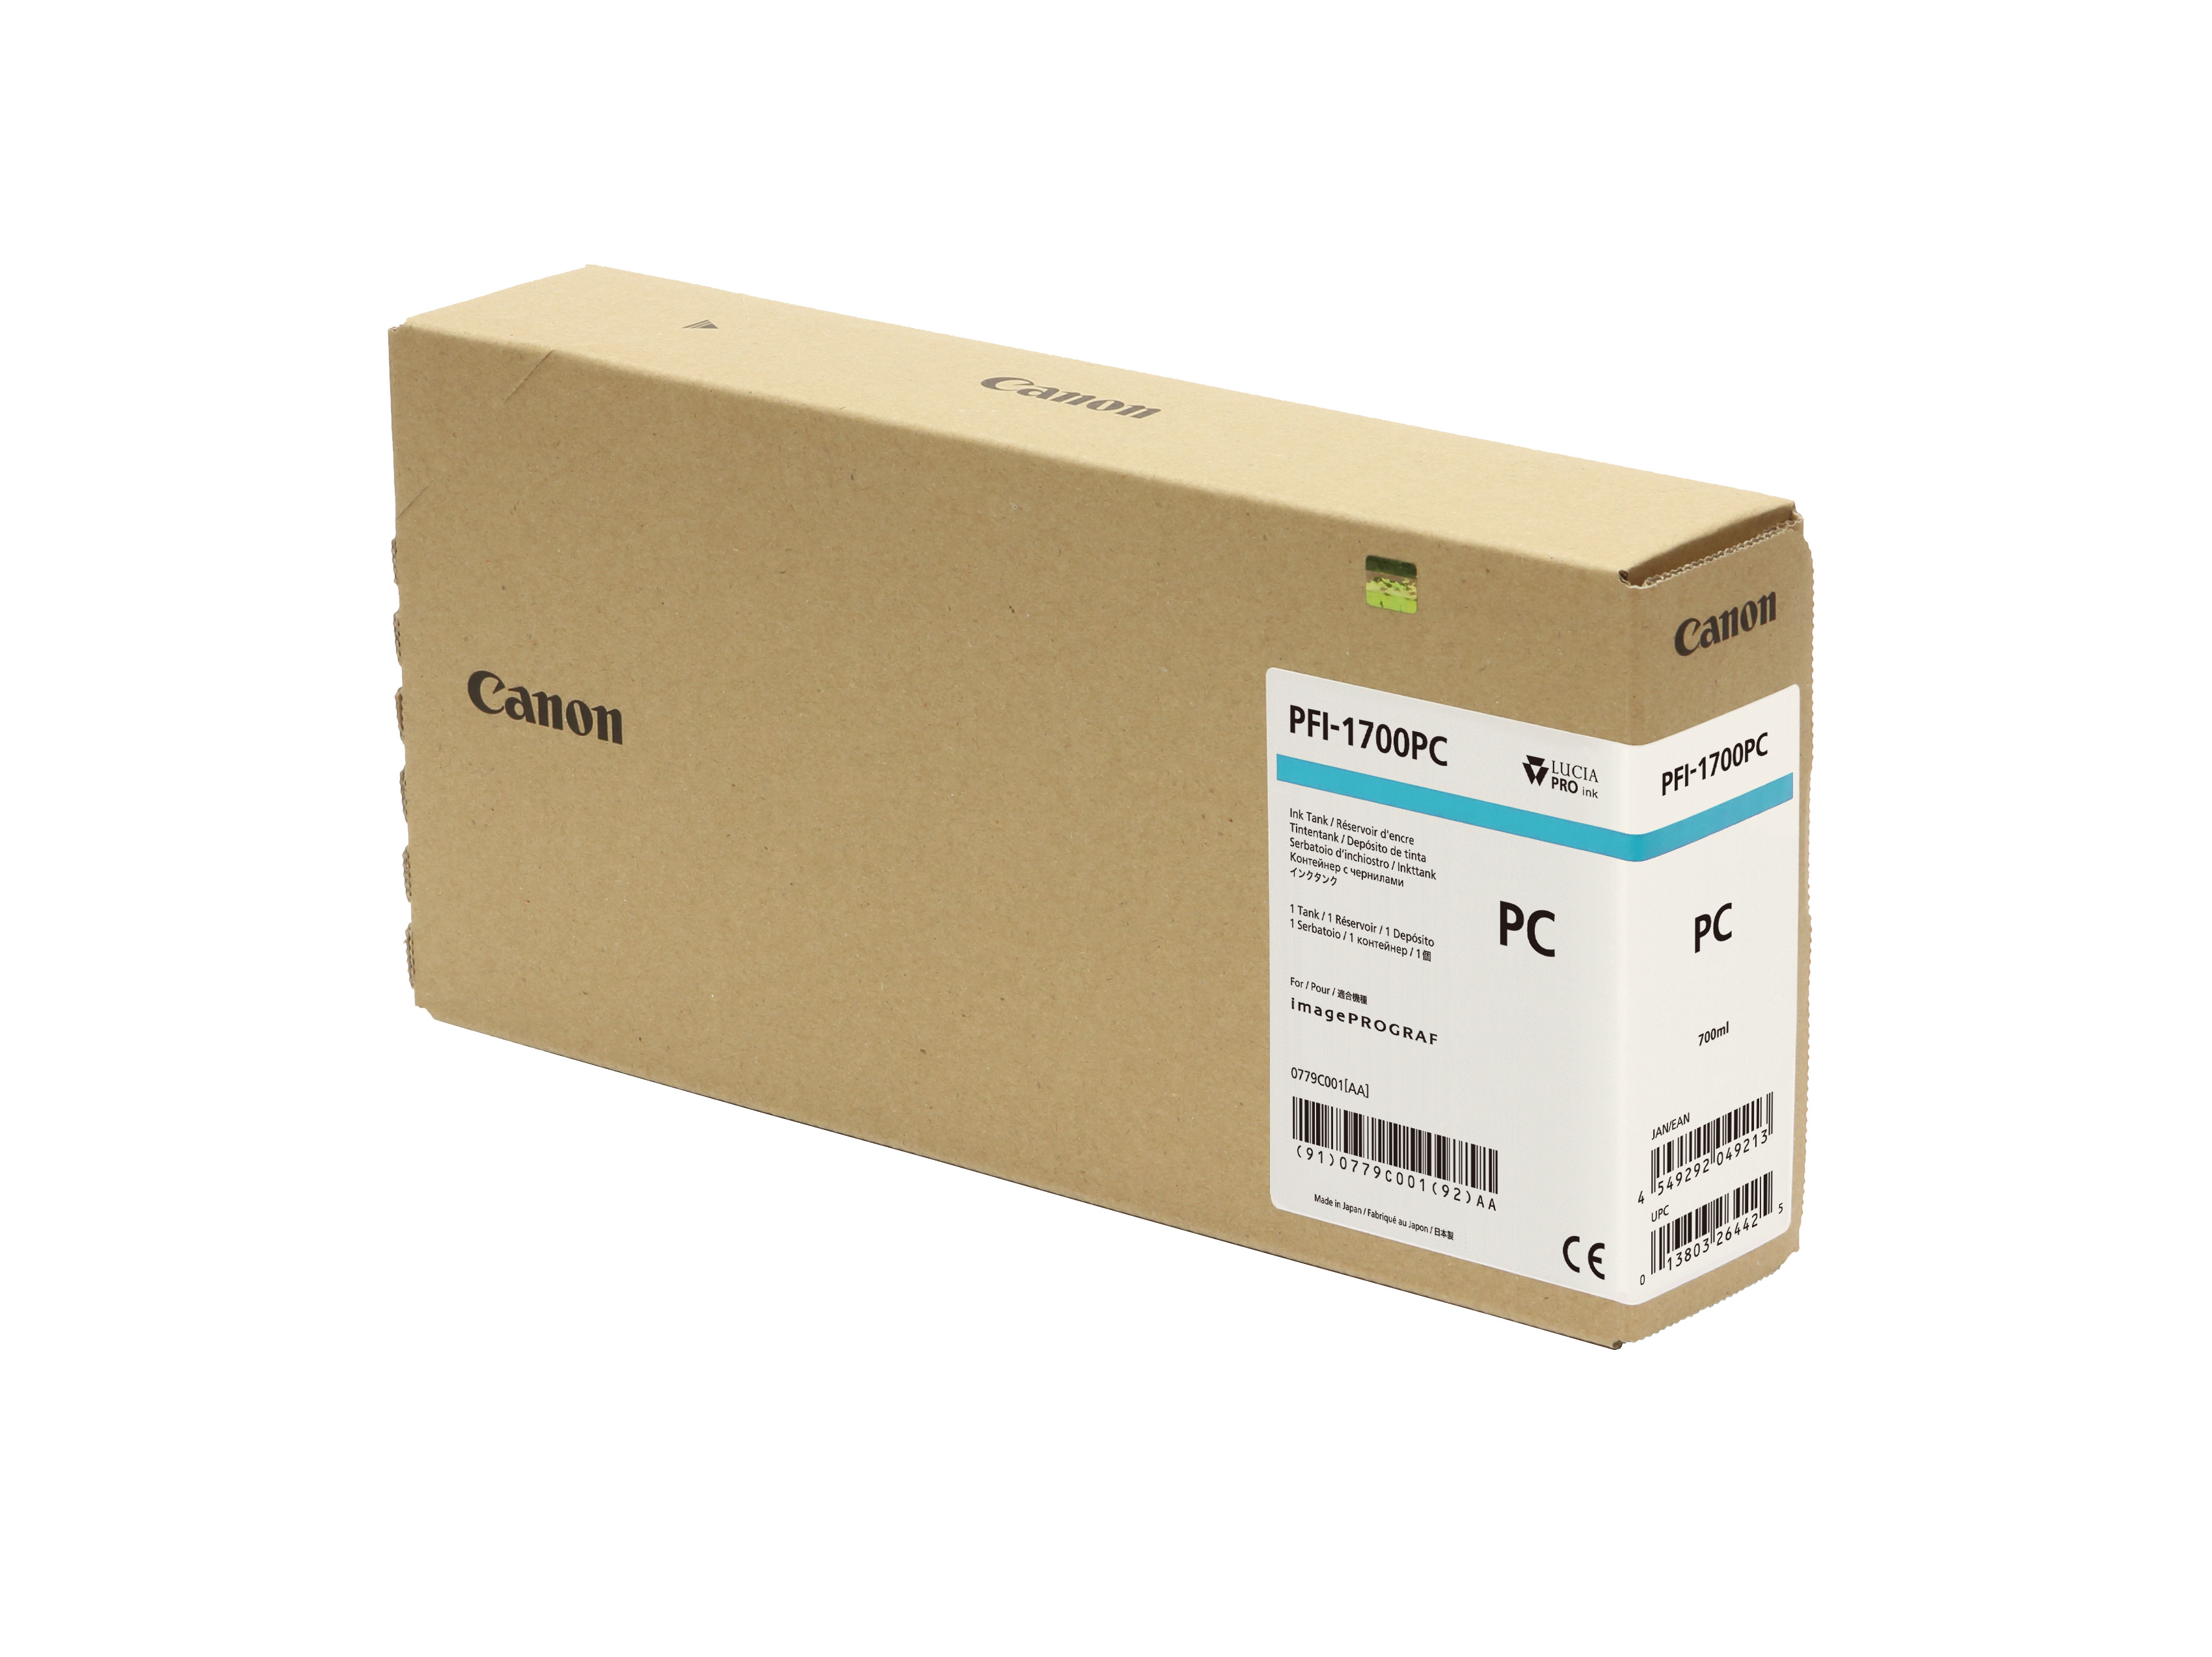 Canon PFI-1700PC Photo Cyan Ink Tank - 700ml Cartridge - for Canon PRO-2000, PRO-4000, PRO-4000S & PRO-6000S Printer - 0779C001AA - next day delivery from GDS Graphic Design Supplies Ltd